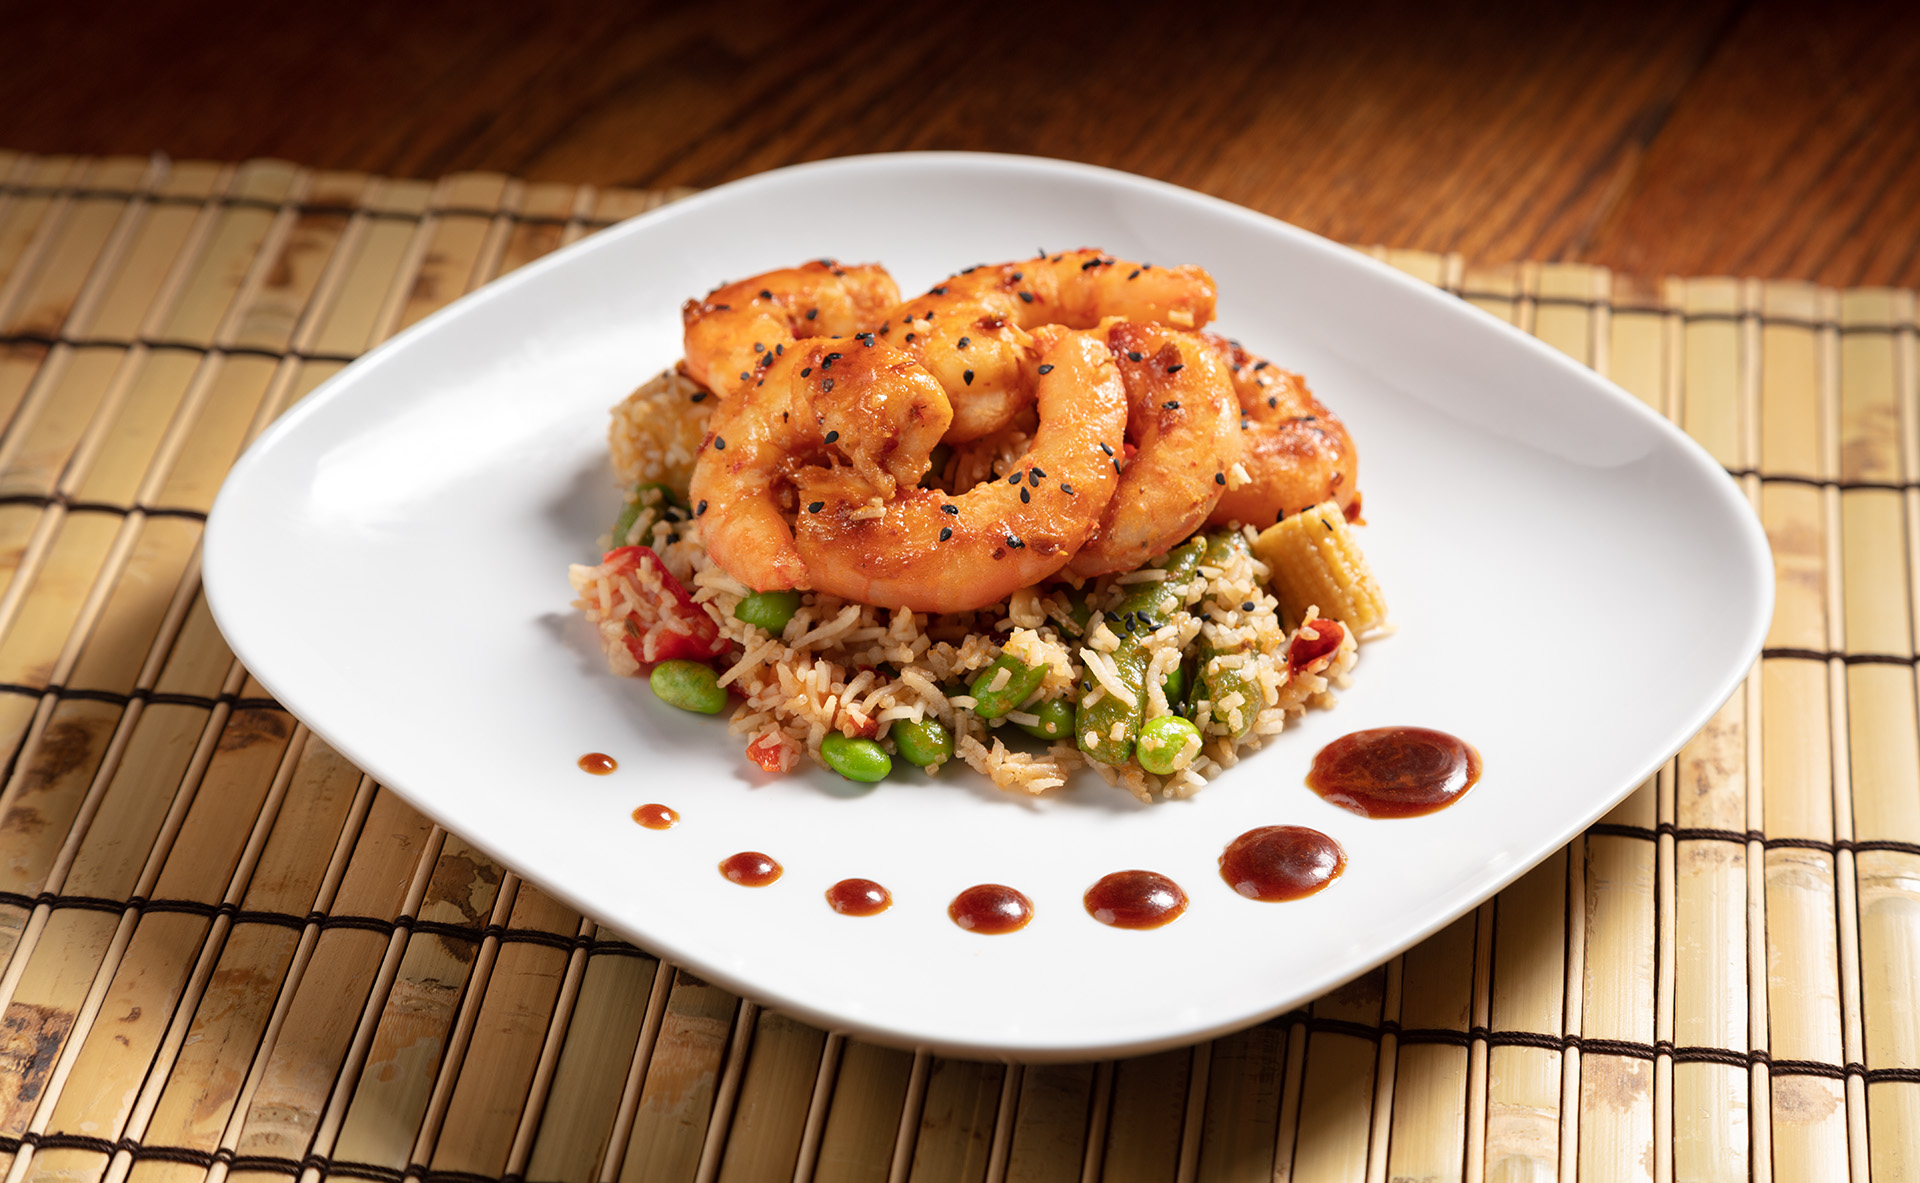 Stir Fried Shrimp looking so good on a plate.